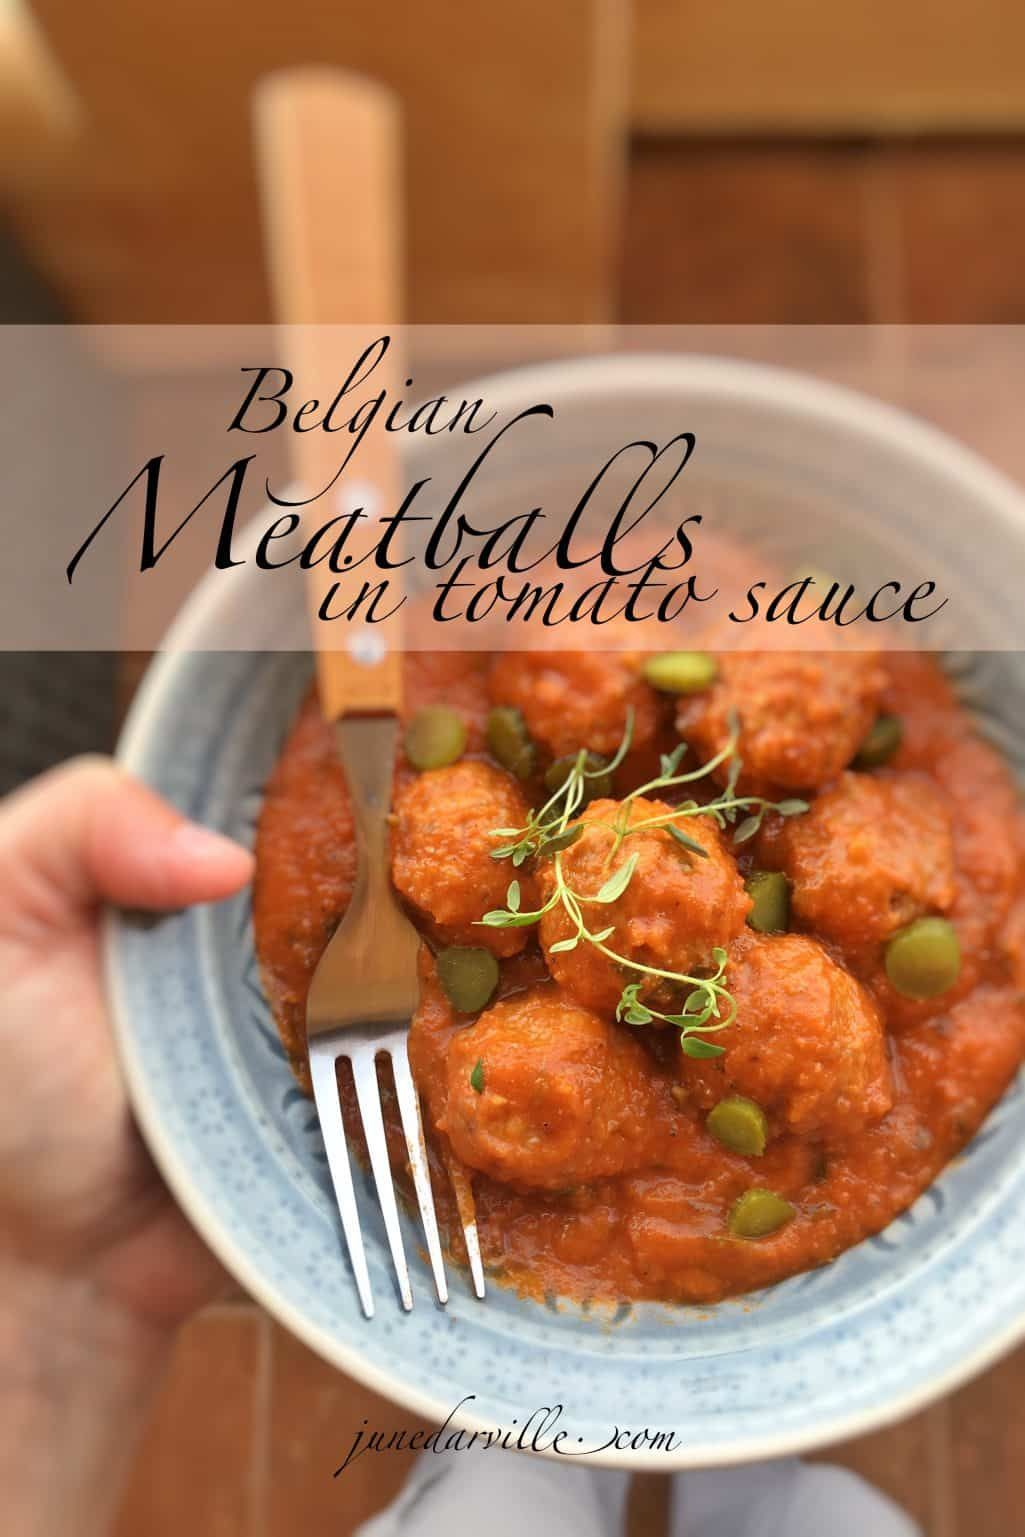 My delicious meatballs in tomato sauce recipe a classic belgian my delicious meatballs in tomato sauce recipe a classic belgian dish prepared my style forumfinder Choice Image